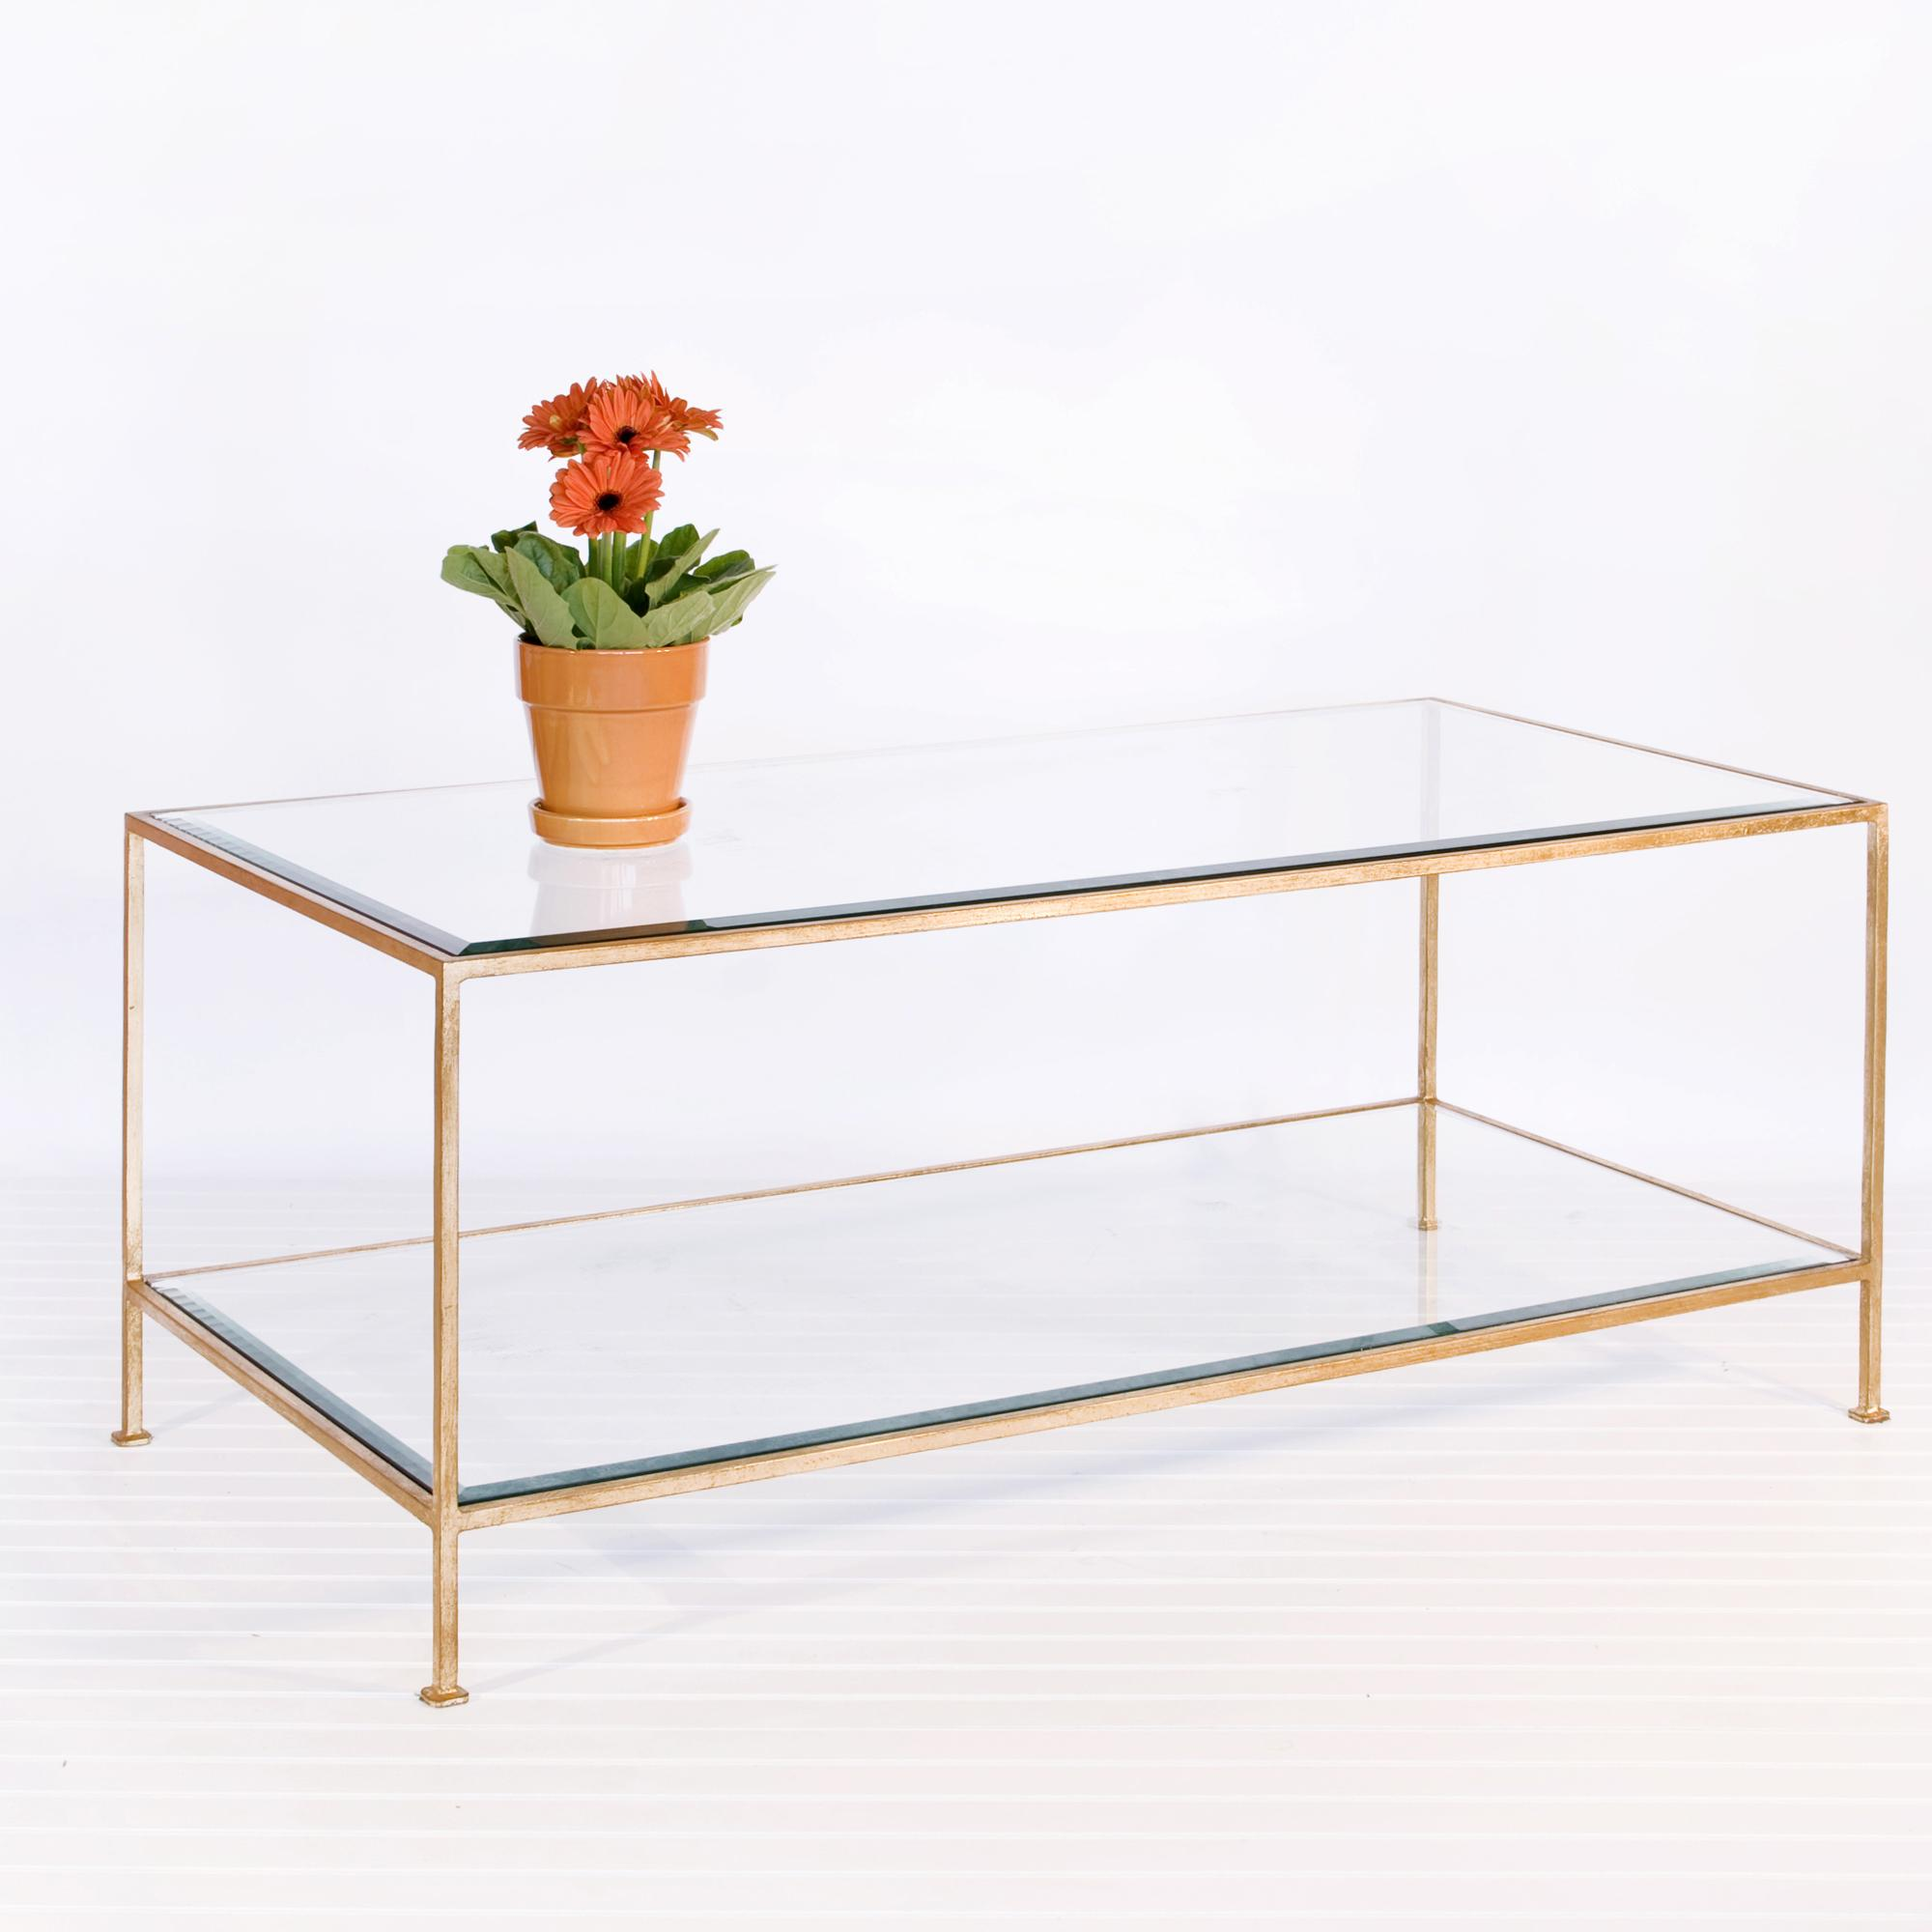 Gold Glass Coffee Table Is This Lovely Recycled Wood Iron And Pine Shape Ensures That This Piece Will Make A Statement (Image 6 of 10)